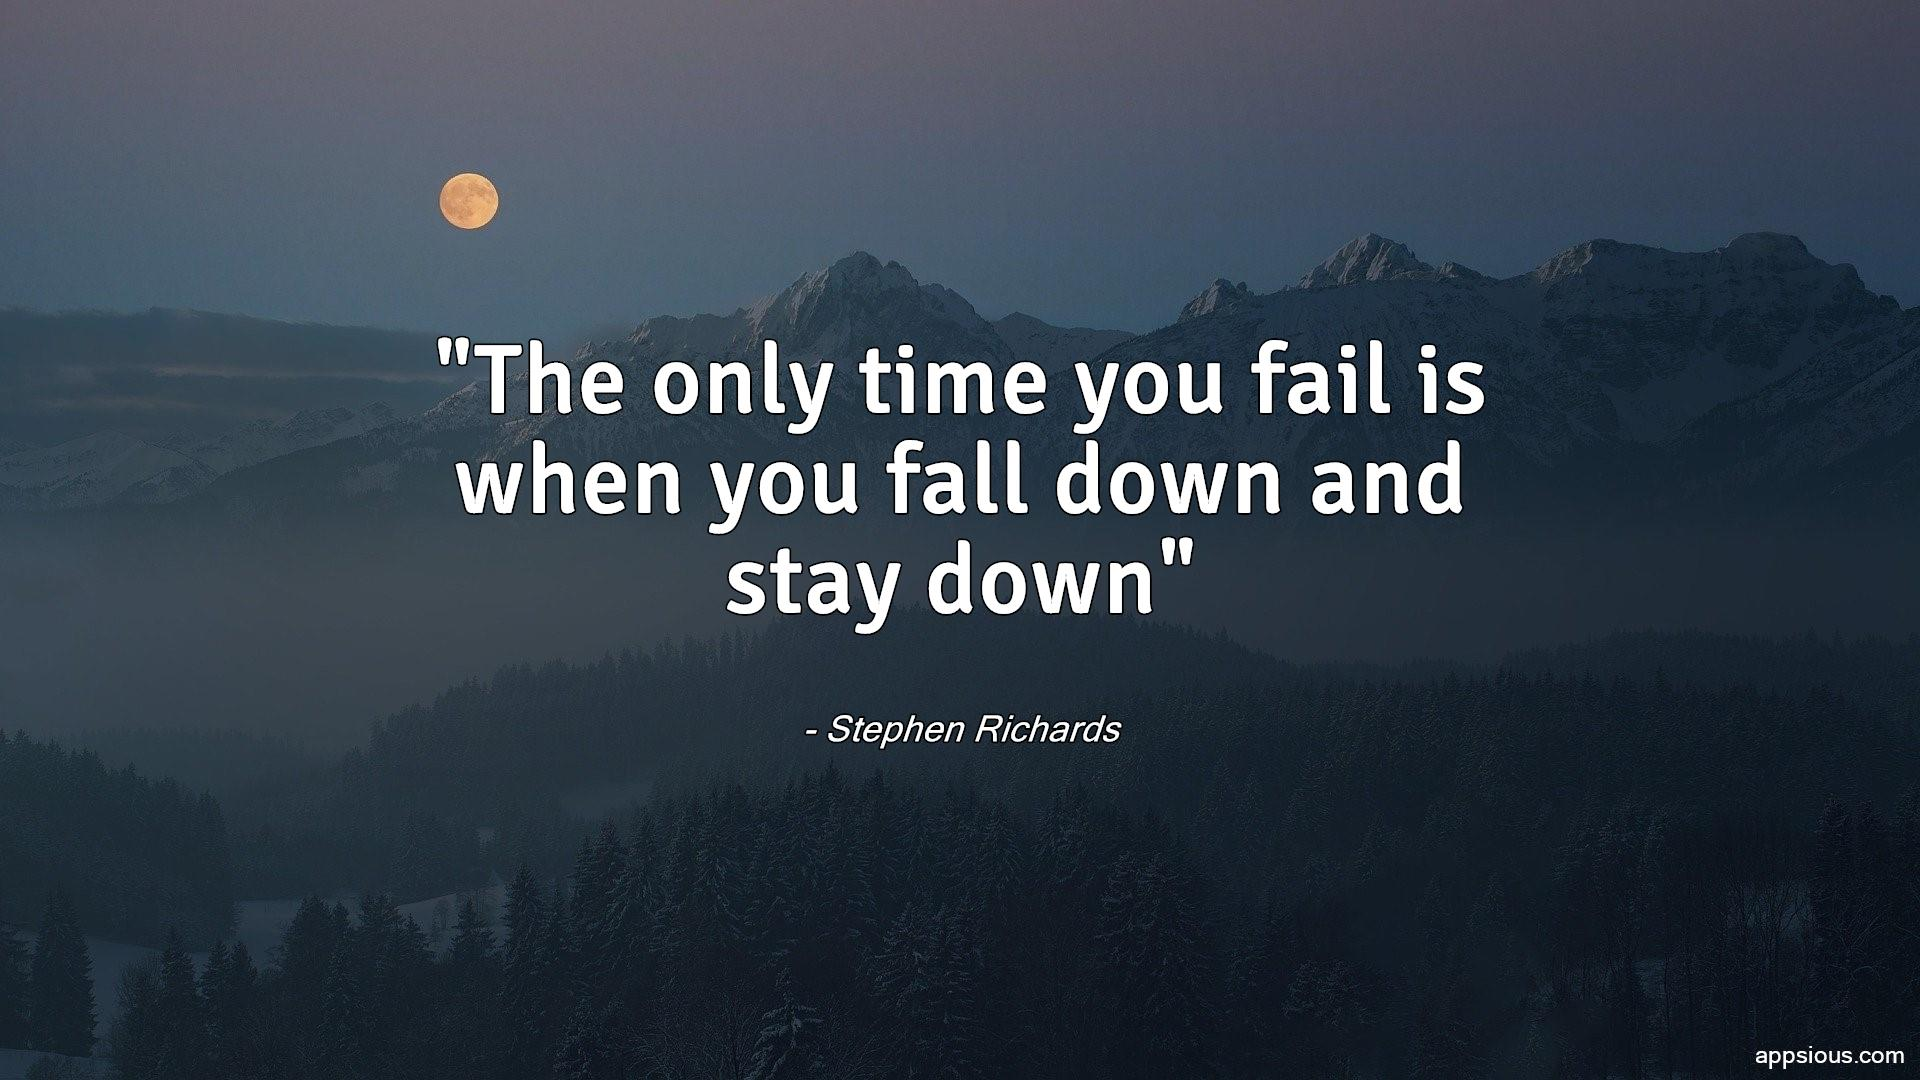 The only time you fail is when you fall down and stay down